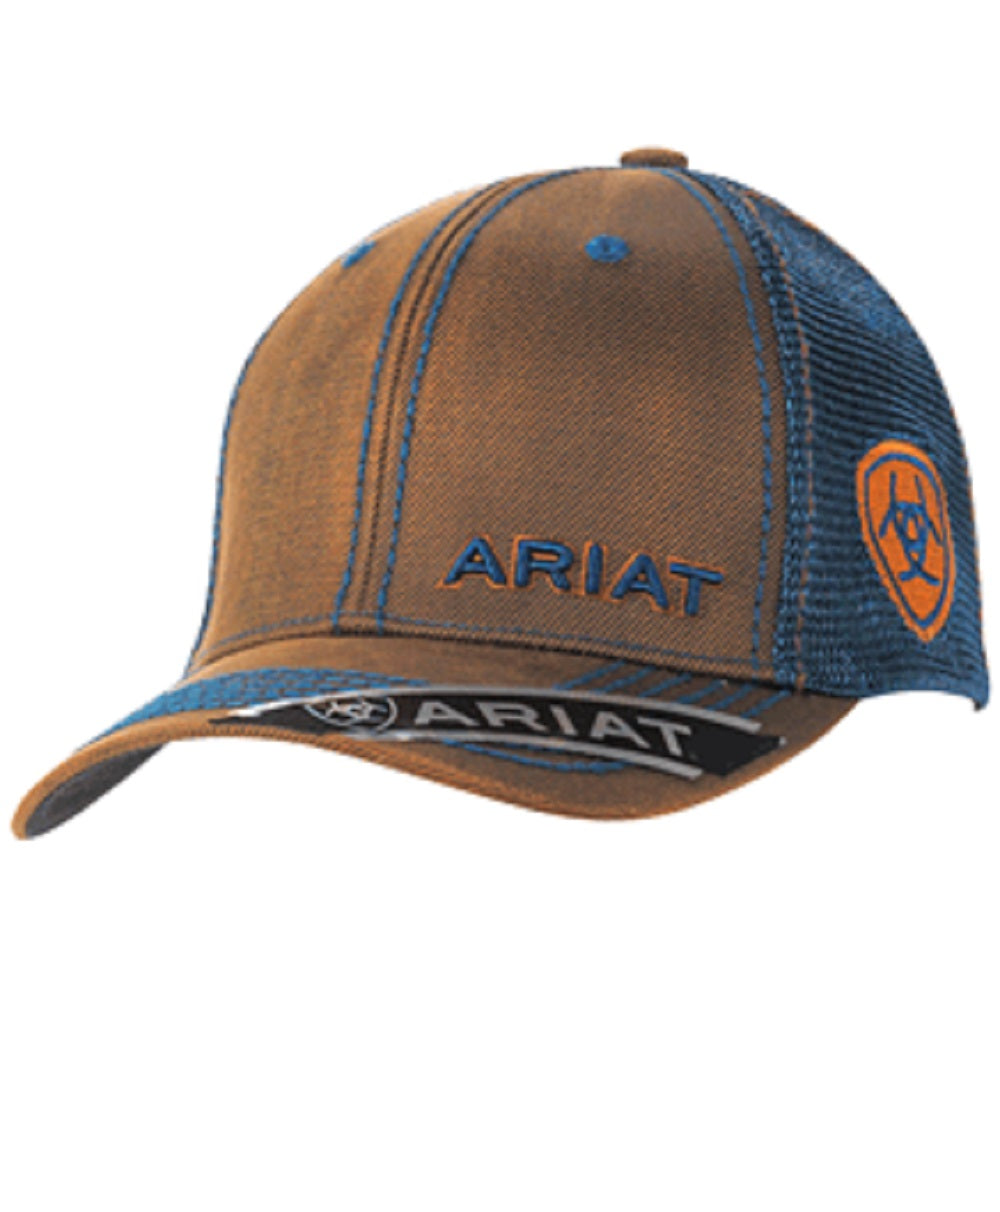 M&F WESTERN ARIAT NAVY BALL CAP - STYLE #1509502